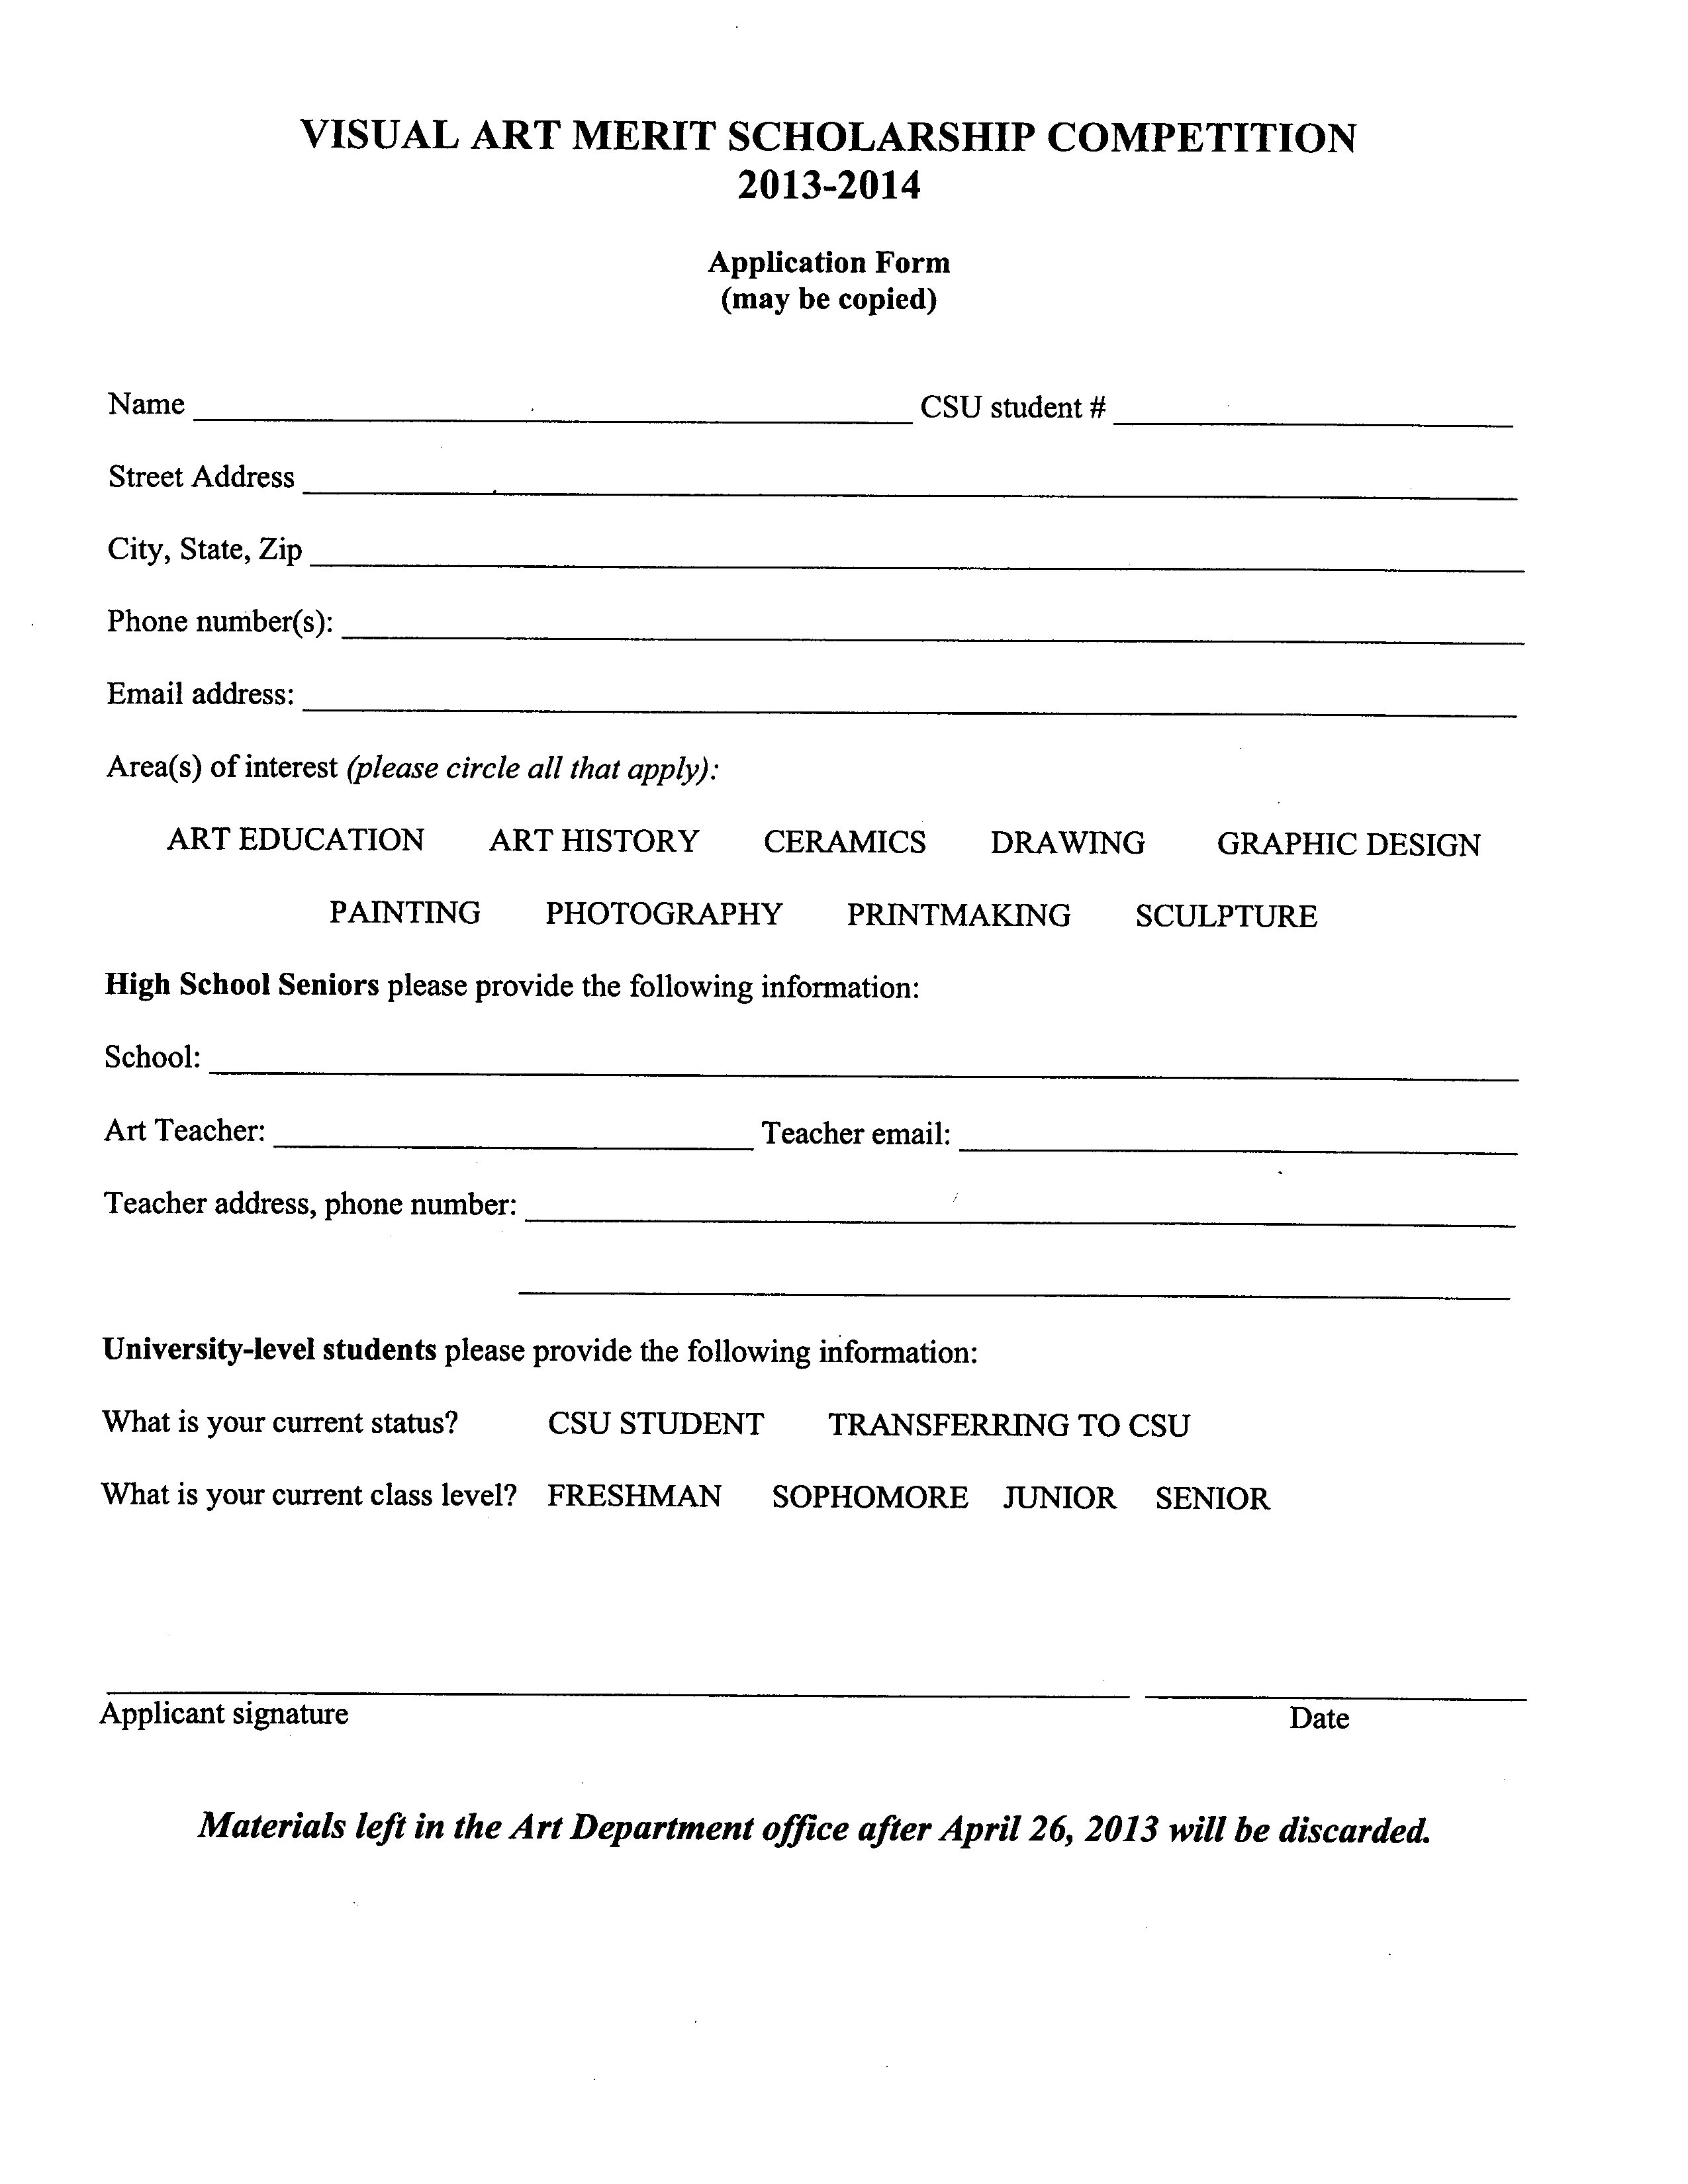 merit scholarship info and entry form